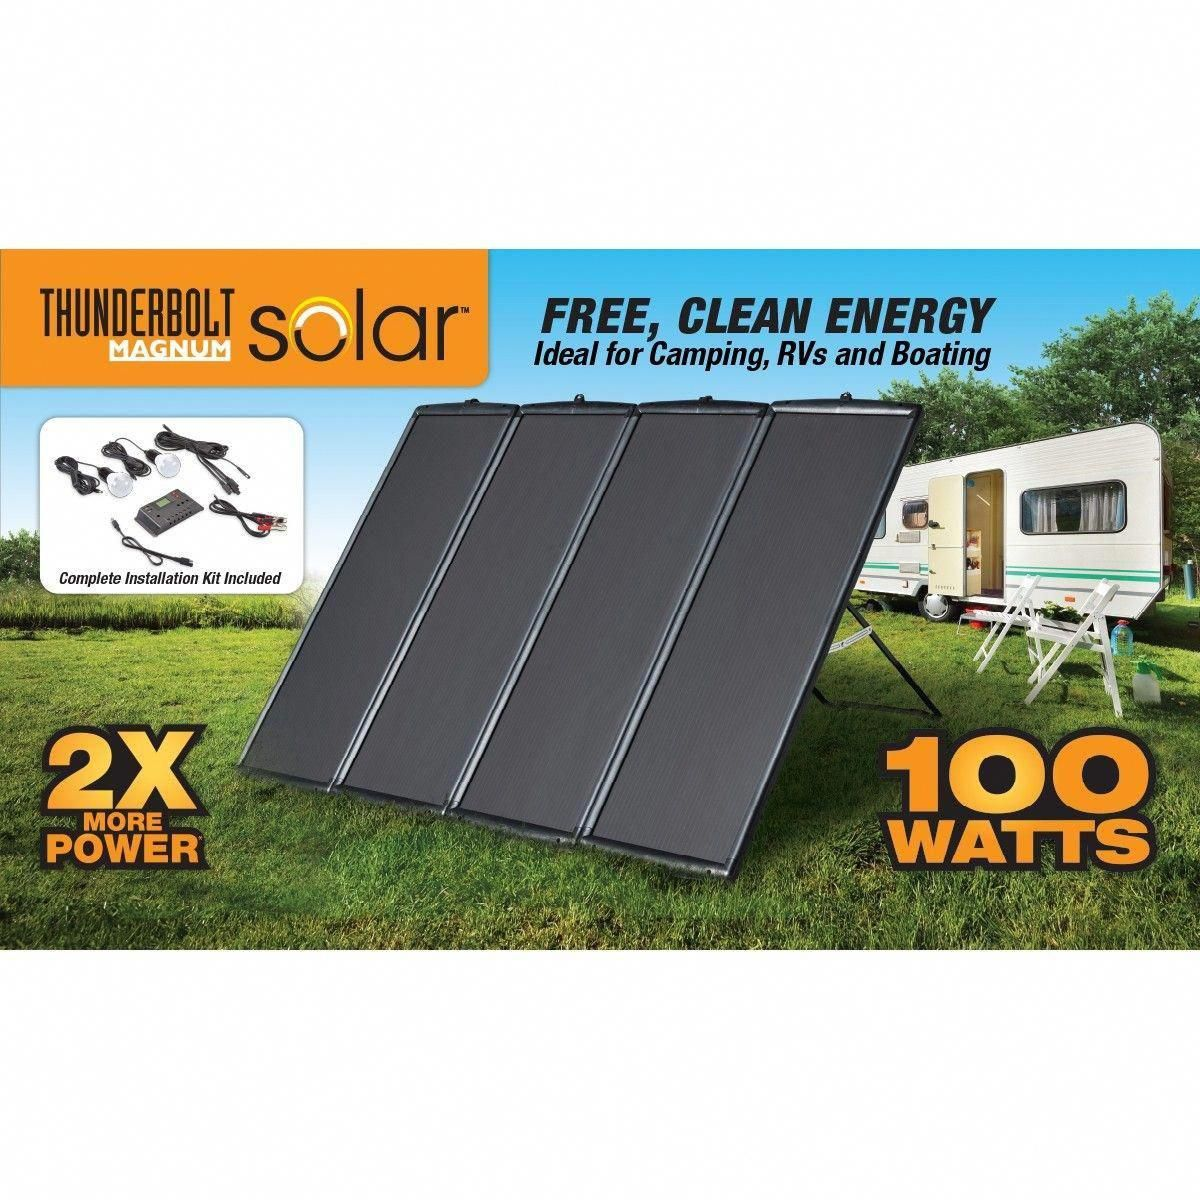 00 Watt Solar Panel Kit Solarpanels Solarenergy Solarpower Solargenerator Solarpanelkits Solarwaterheater Solarshingl Best Solar Panels Solar Panel Kits Solar